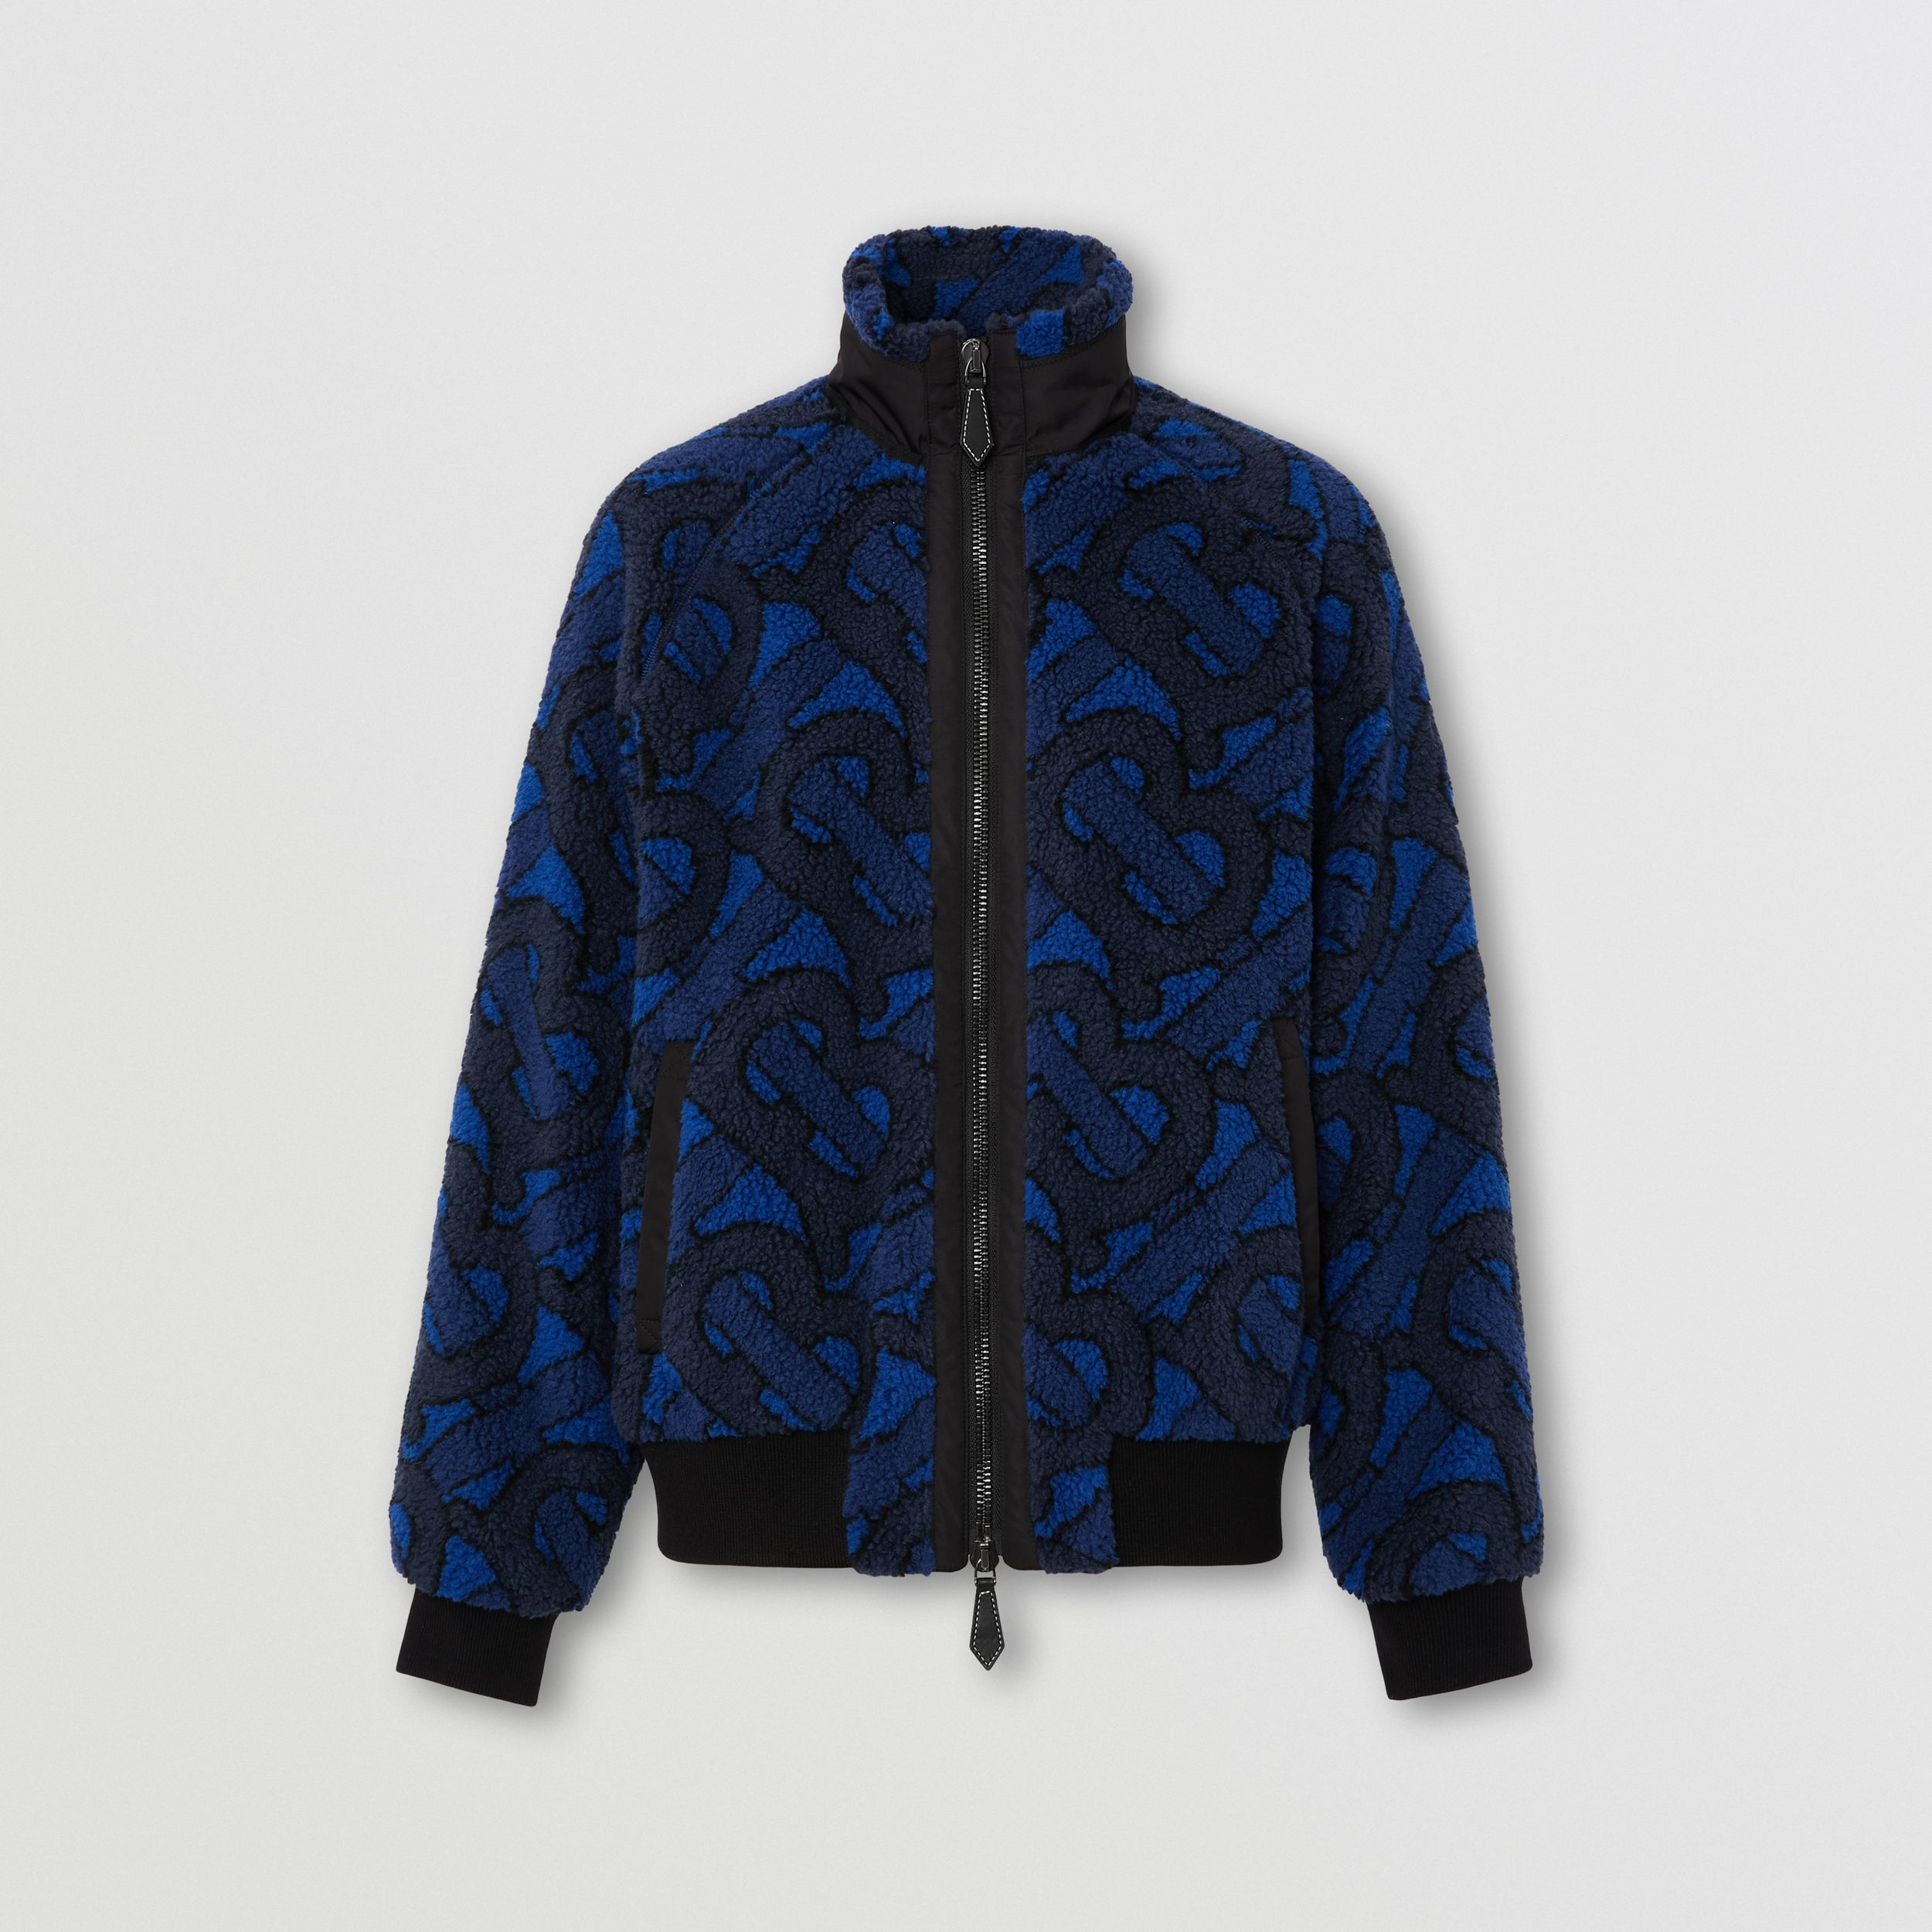 Monogram Fleece Jacquard Jacket in Navy - Women | Burberry - 4